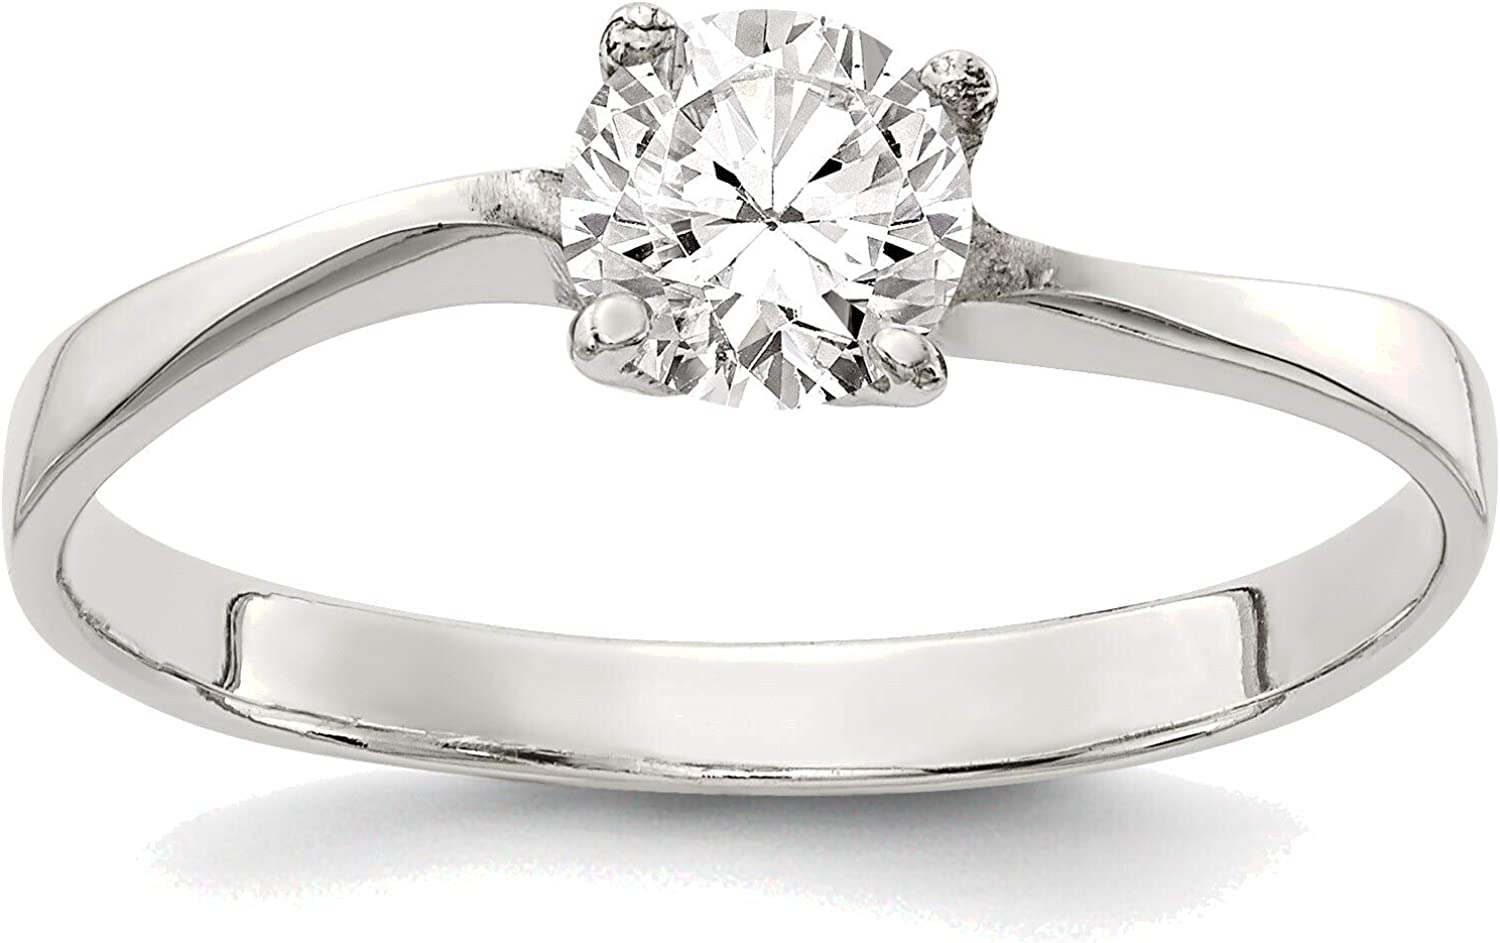 Bonyak Jewelry Solid Sterling Silver in Ring 6 CZ Size Industry No. 1 Genuine Free Shipping